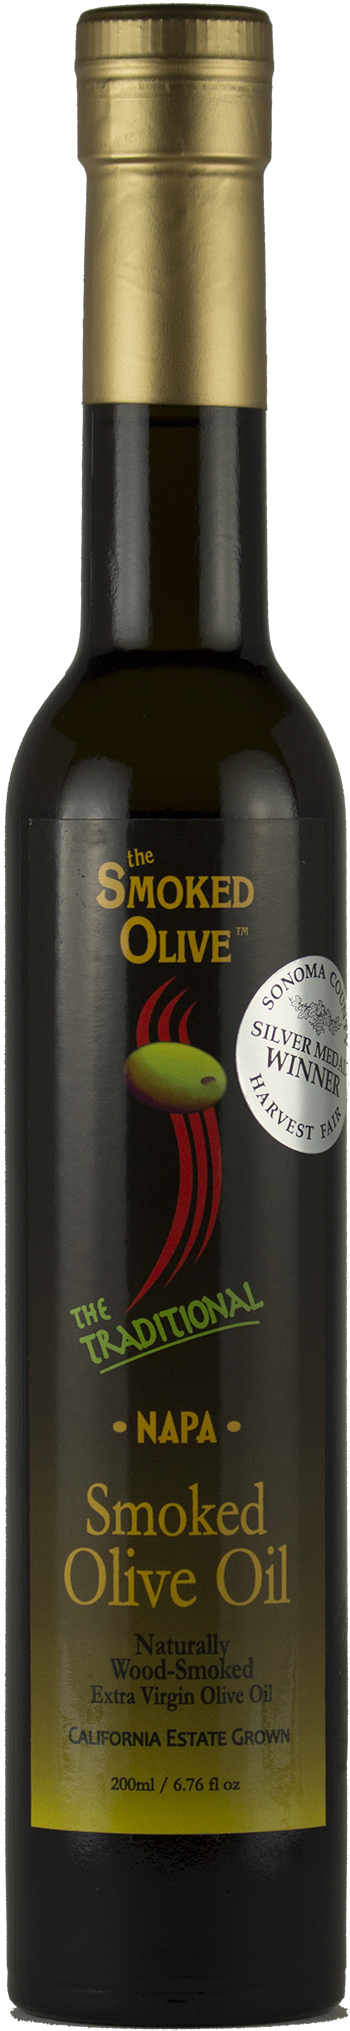 Smoked Olive - NAPA Smoked Olive Oil